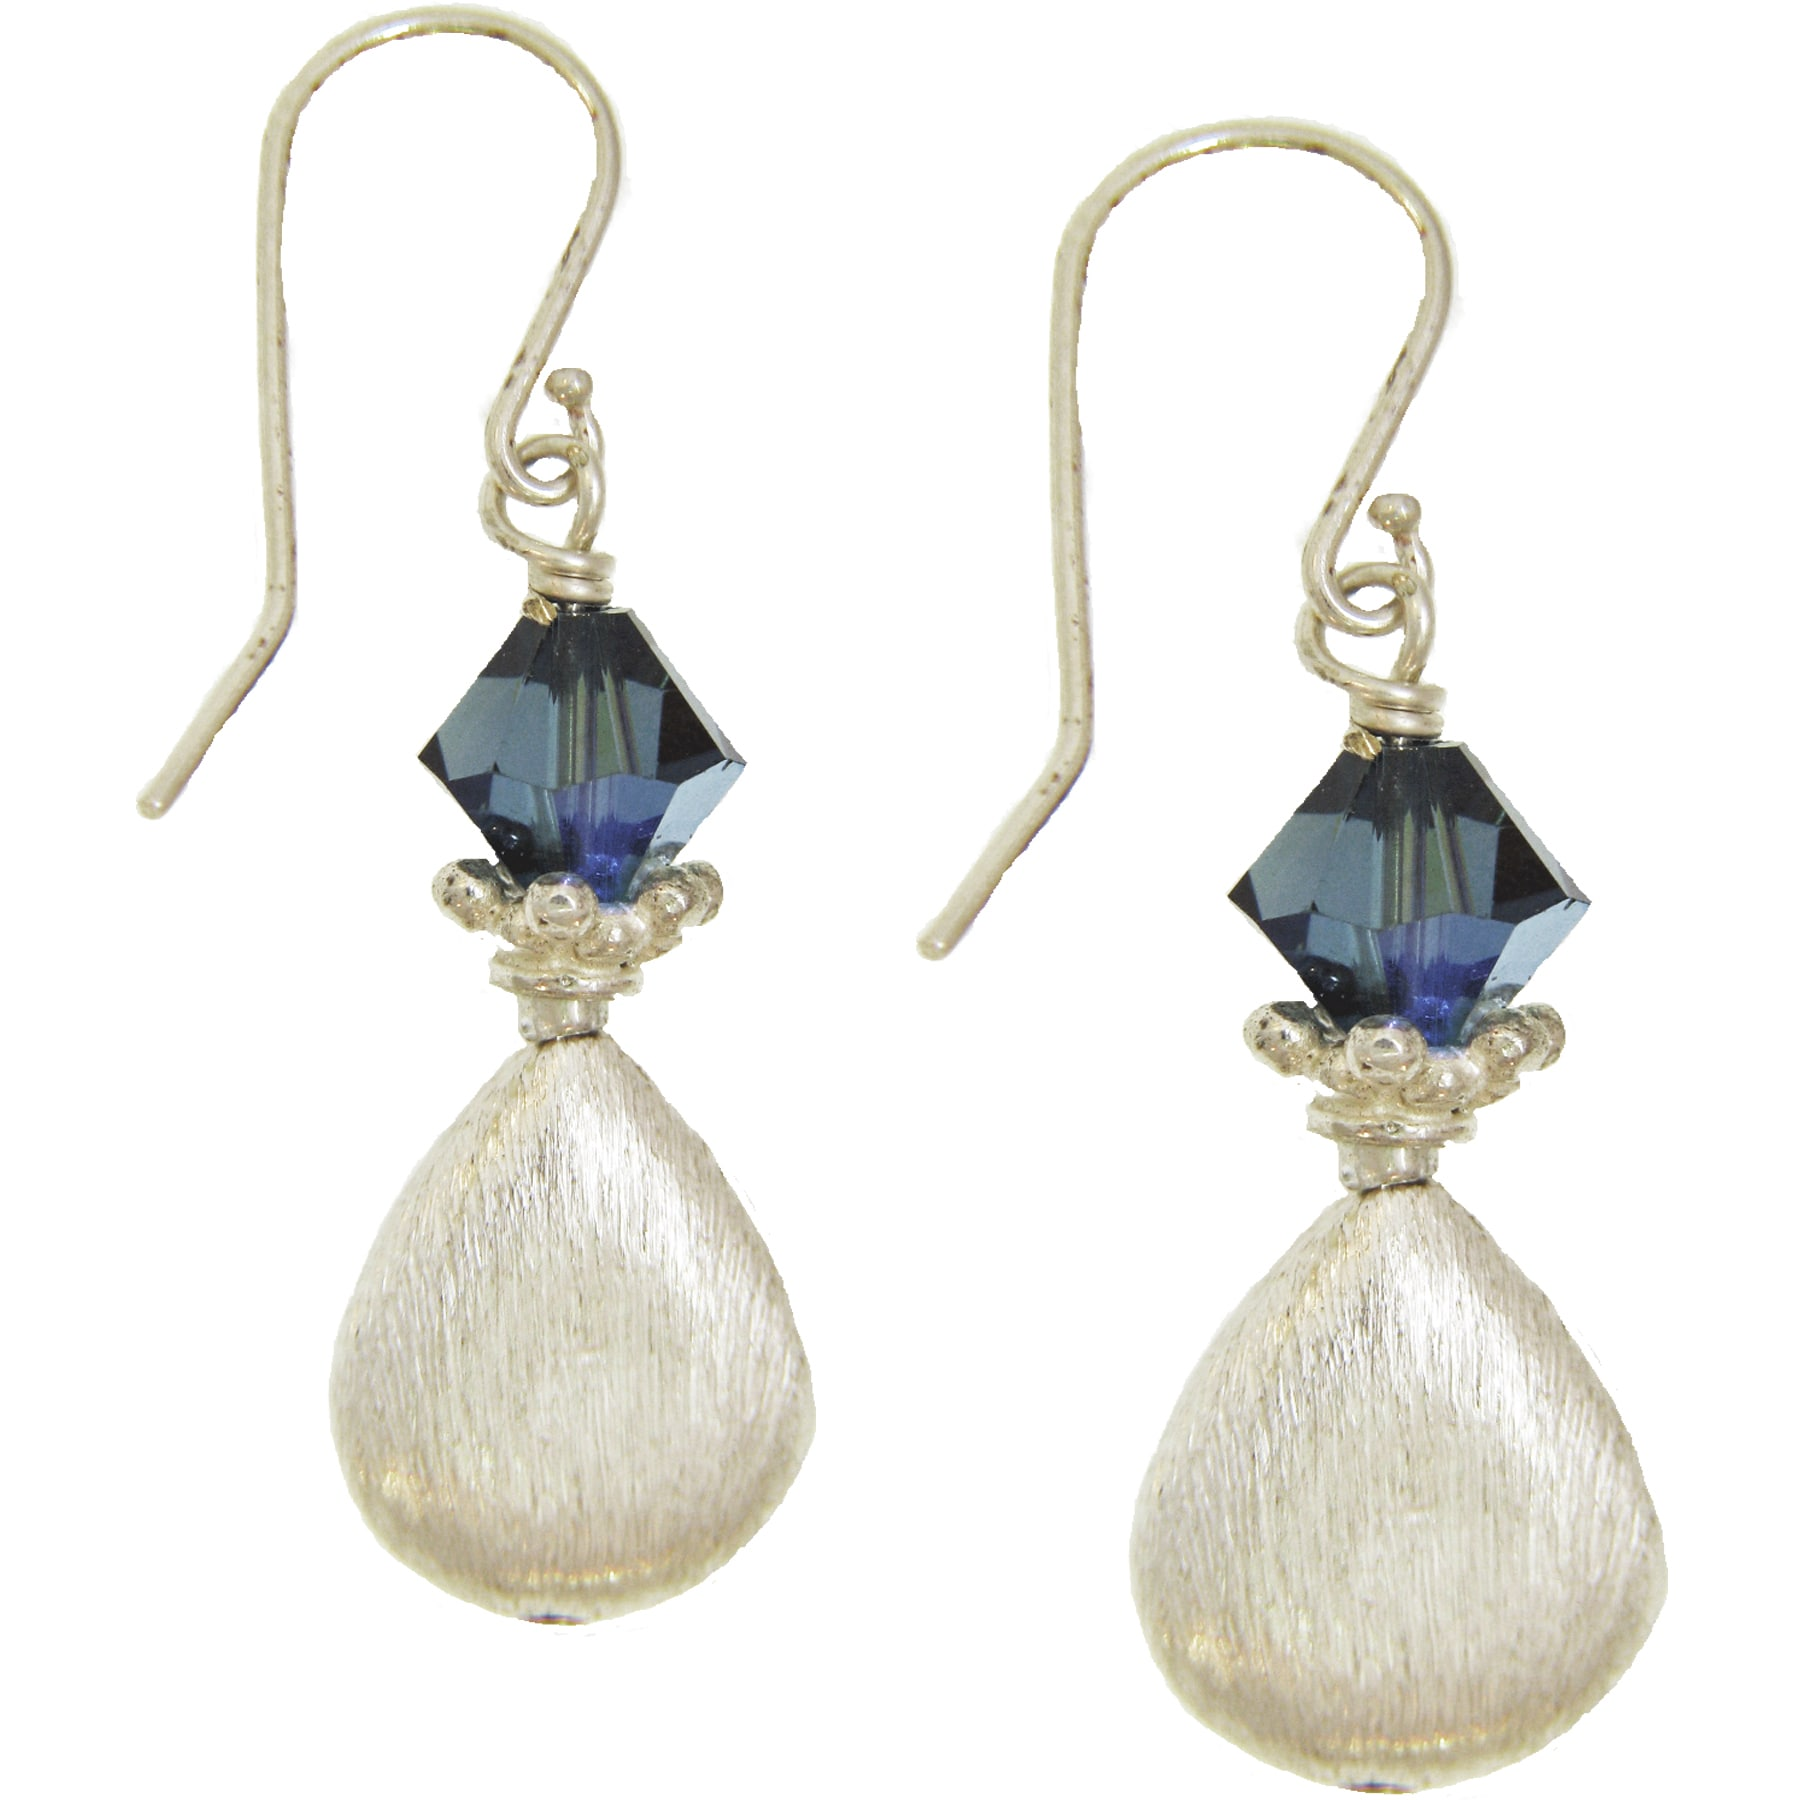 Misha Curtis Sterling Silver Blue Crystal Teardrop Earrings - Thumbnail 0